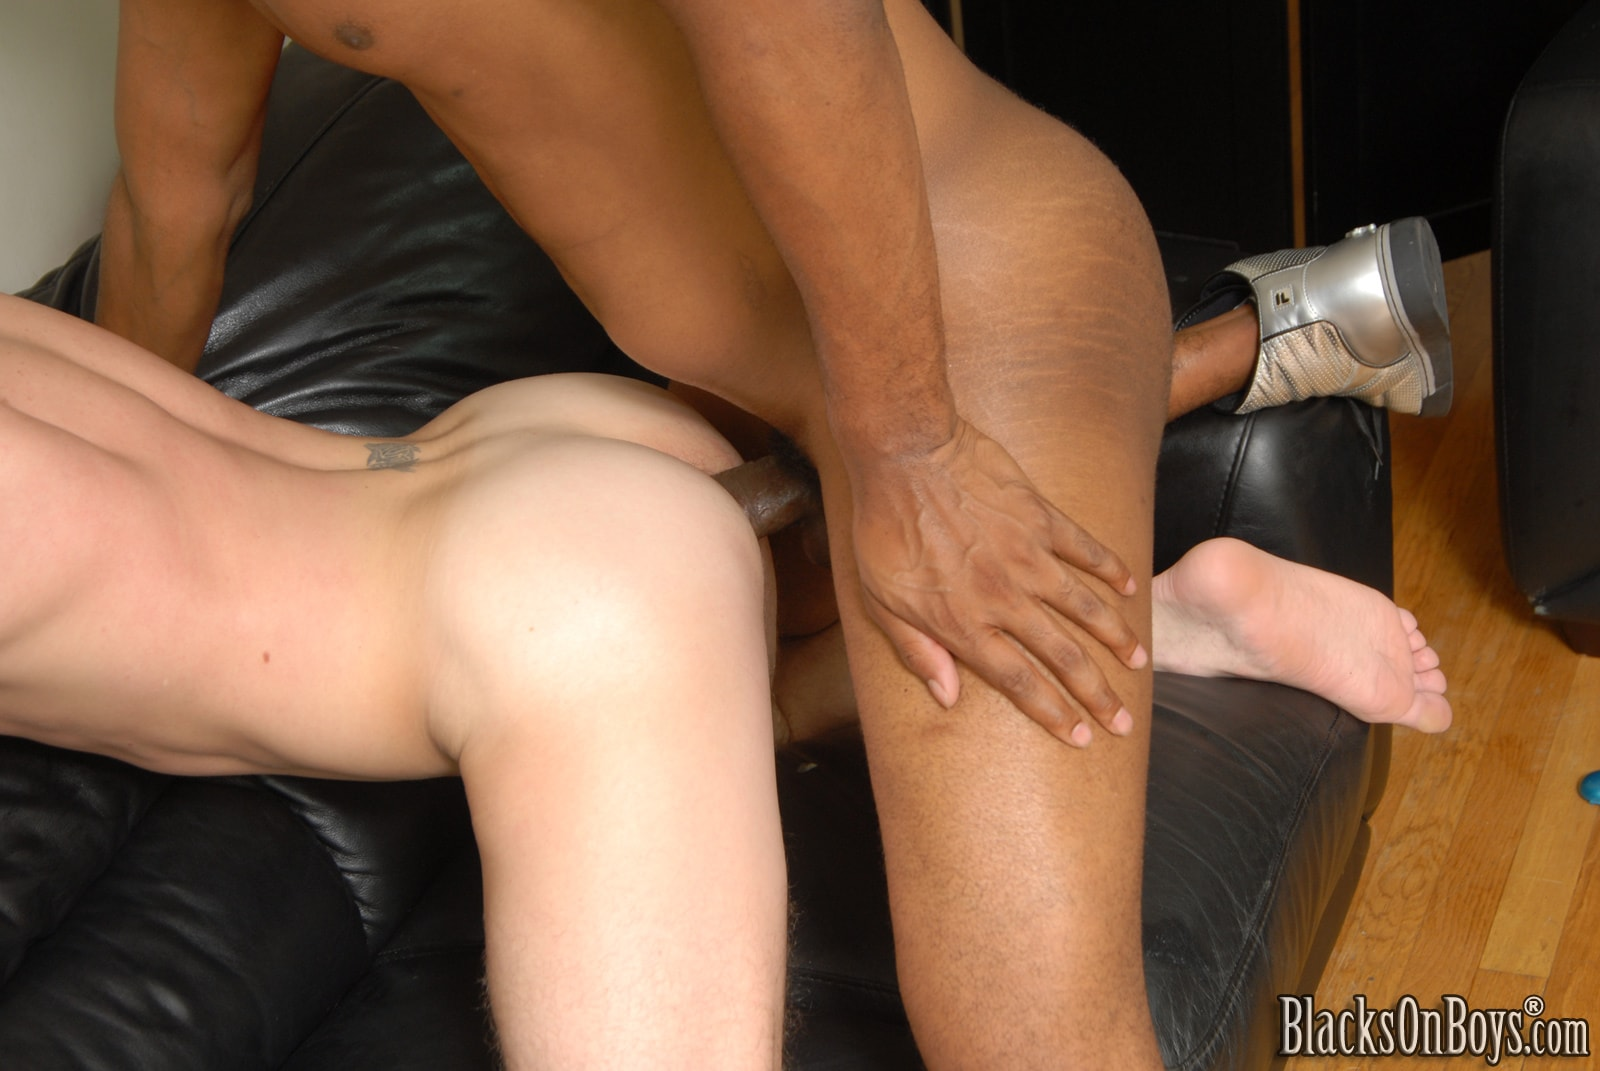 Dogfart Men 'and Kody Rean - Blacks On Boys' starring D-Vine (Photo 23)